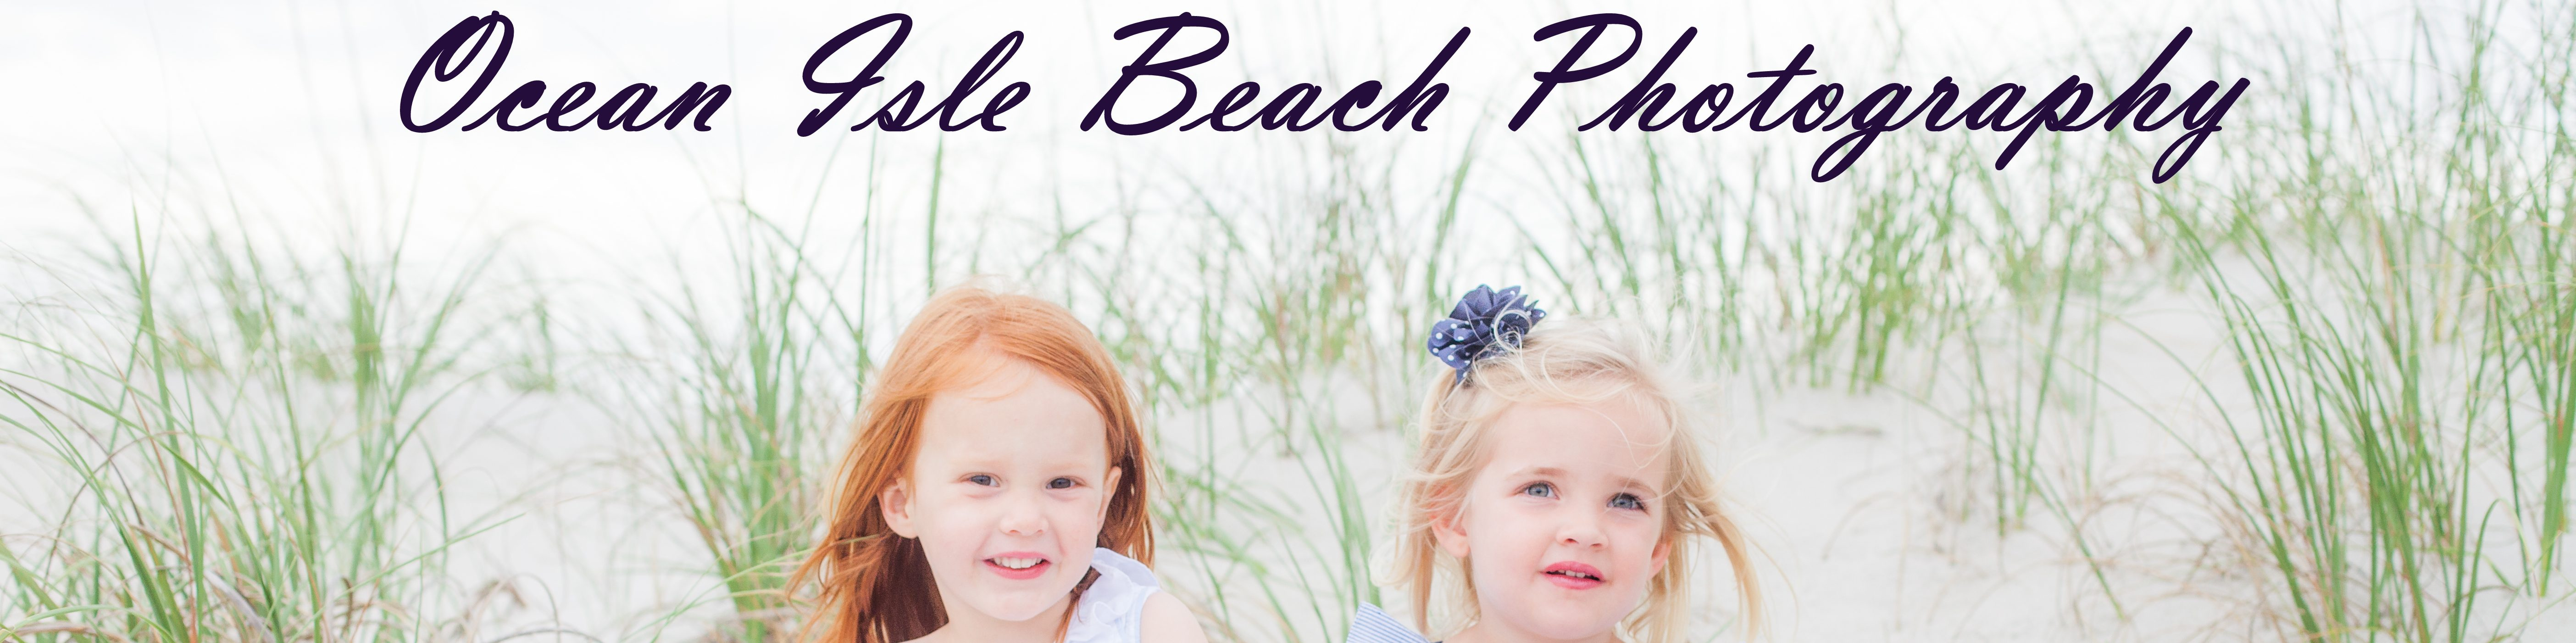 Ocean Isle Beach Photography